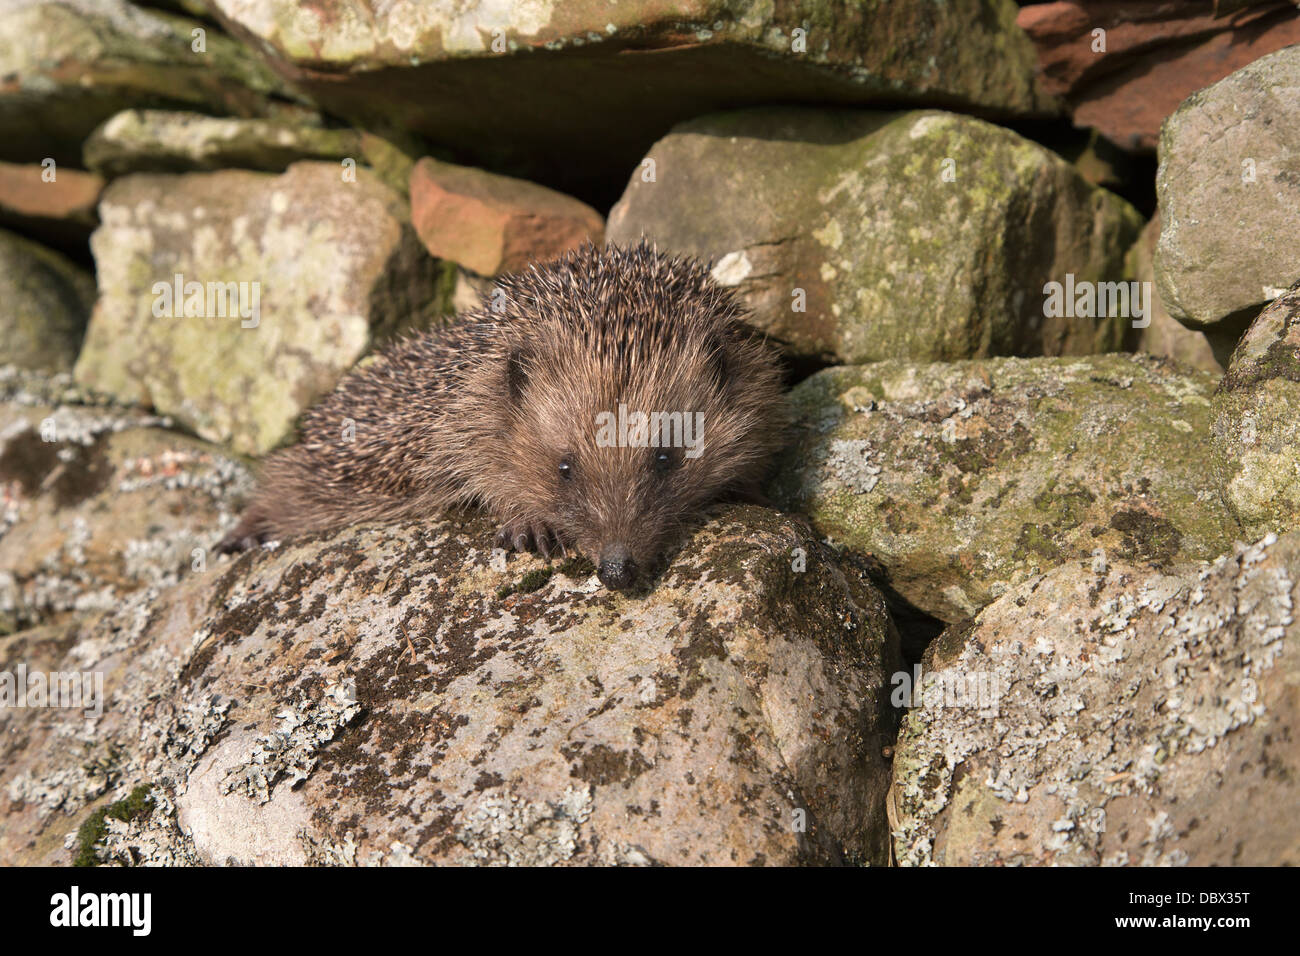 Hedgehog (Erinaceus europaeus), climbing on wall, captive, UK, July 2012 - Stock Image